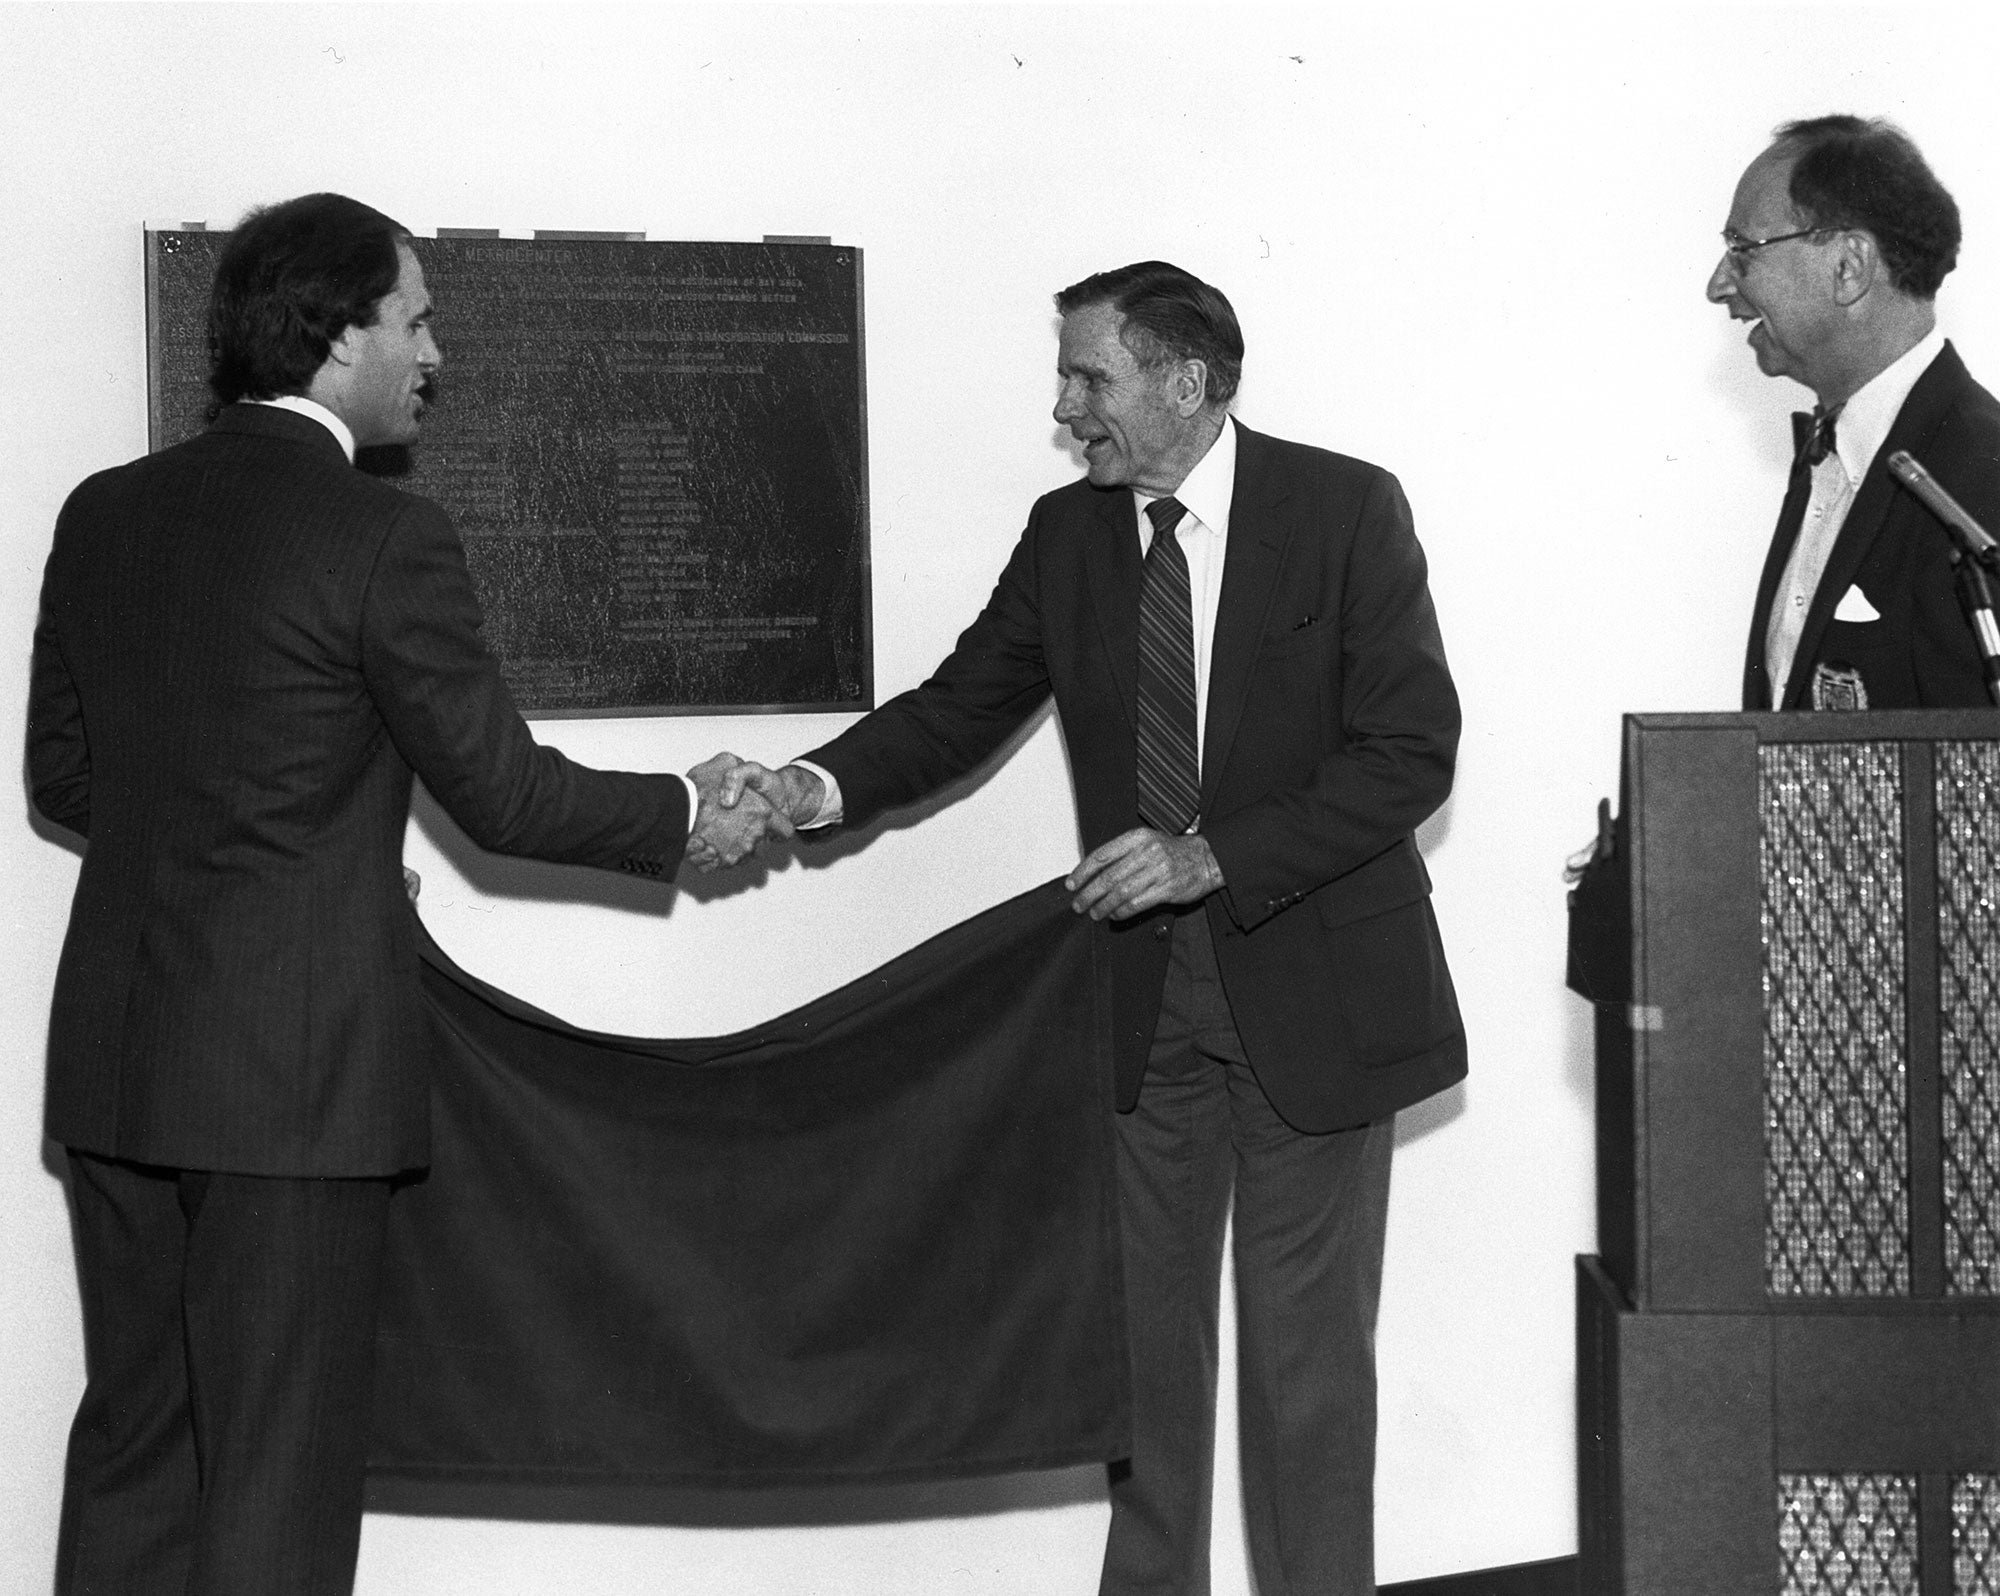 Unveiling a commemorative plaque at the MetroCenter's April 1984 opening ceremony are (left to right) BART Board President Arthur Shartsis, ABAG President and MTC Commissioner (and first MTC Chair) Joseph P. Bort, and MTC Chair Quentin Kopp.